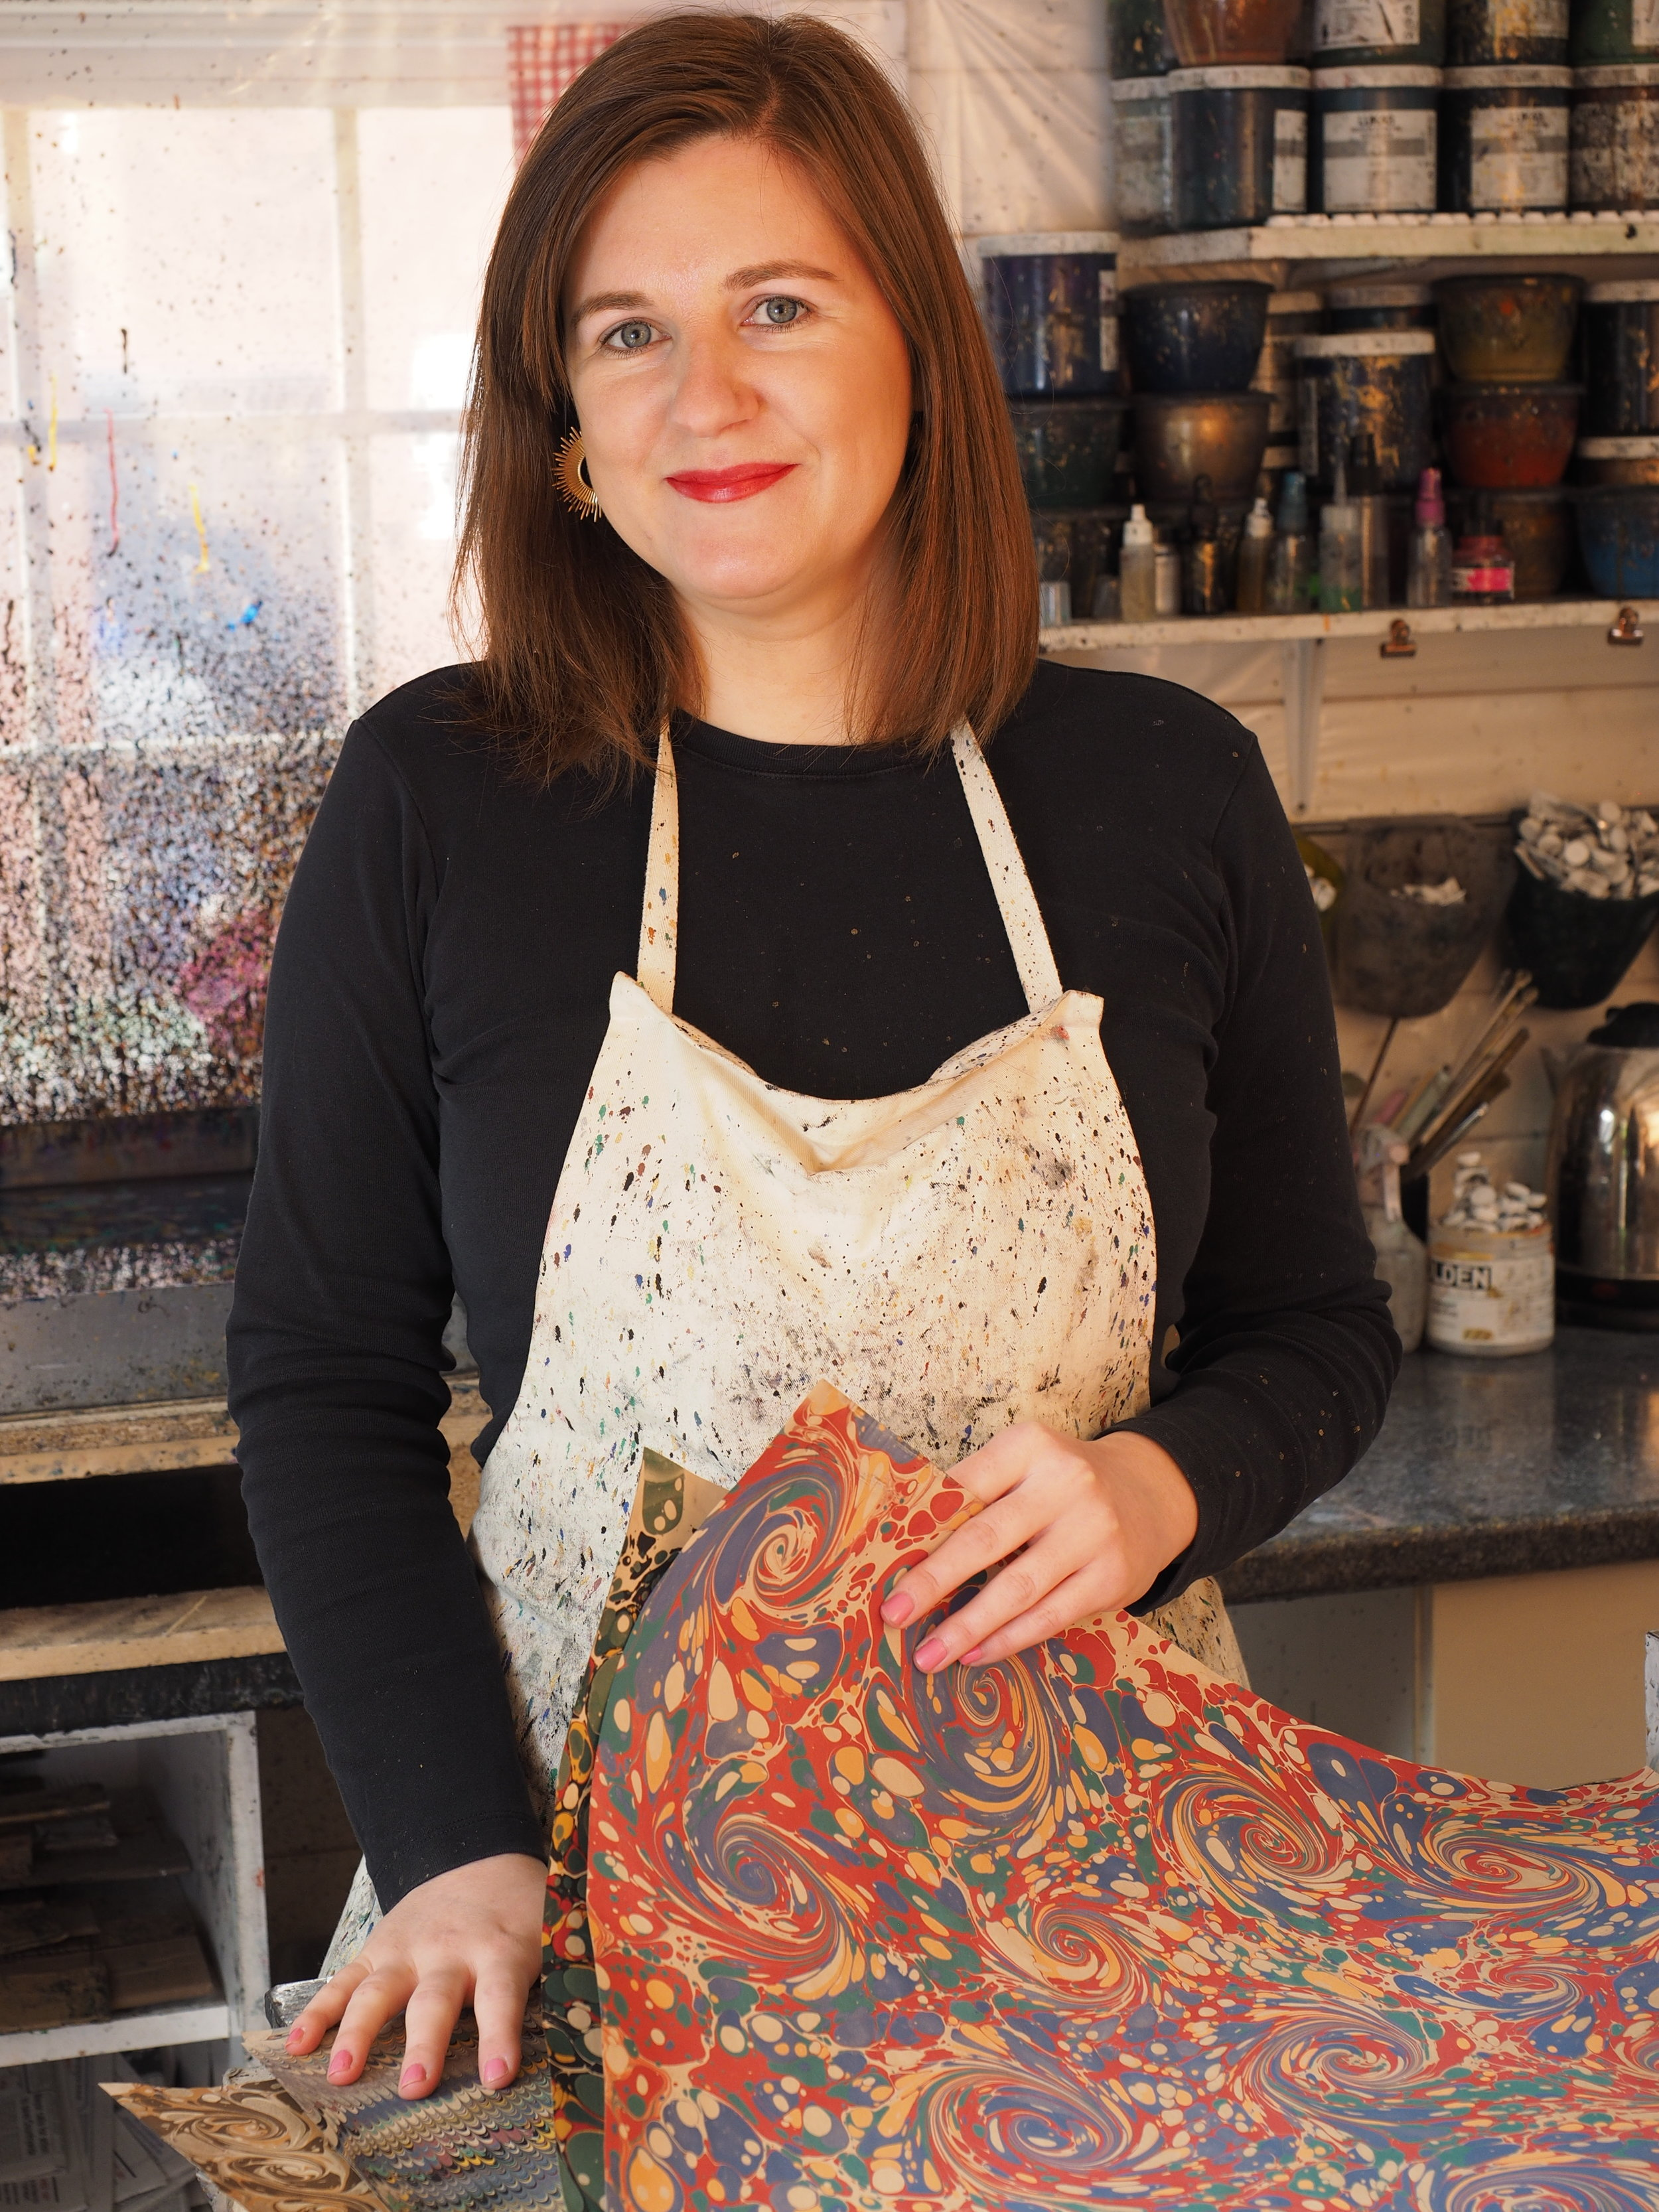 A portrait of Jemma Lewis in her marbling studio.